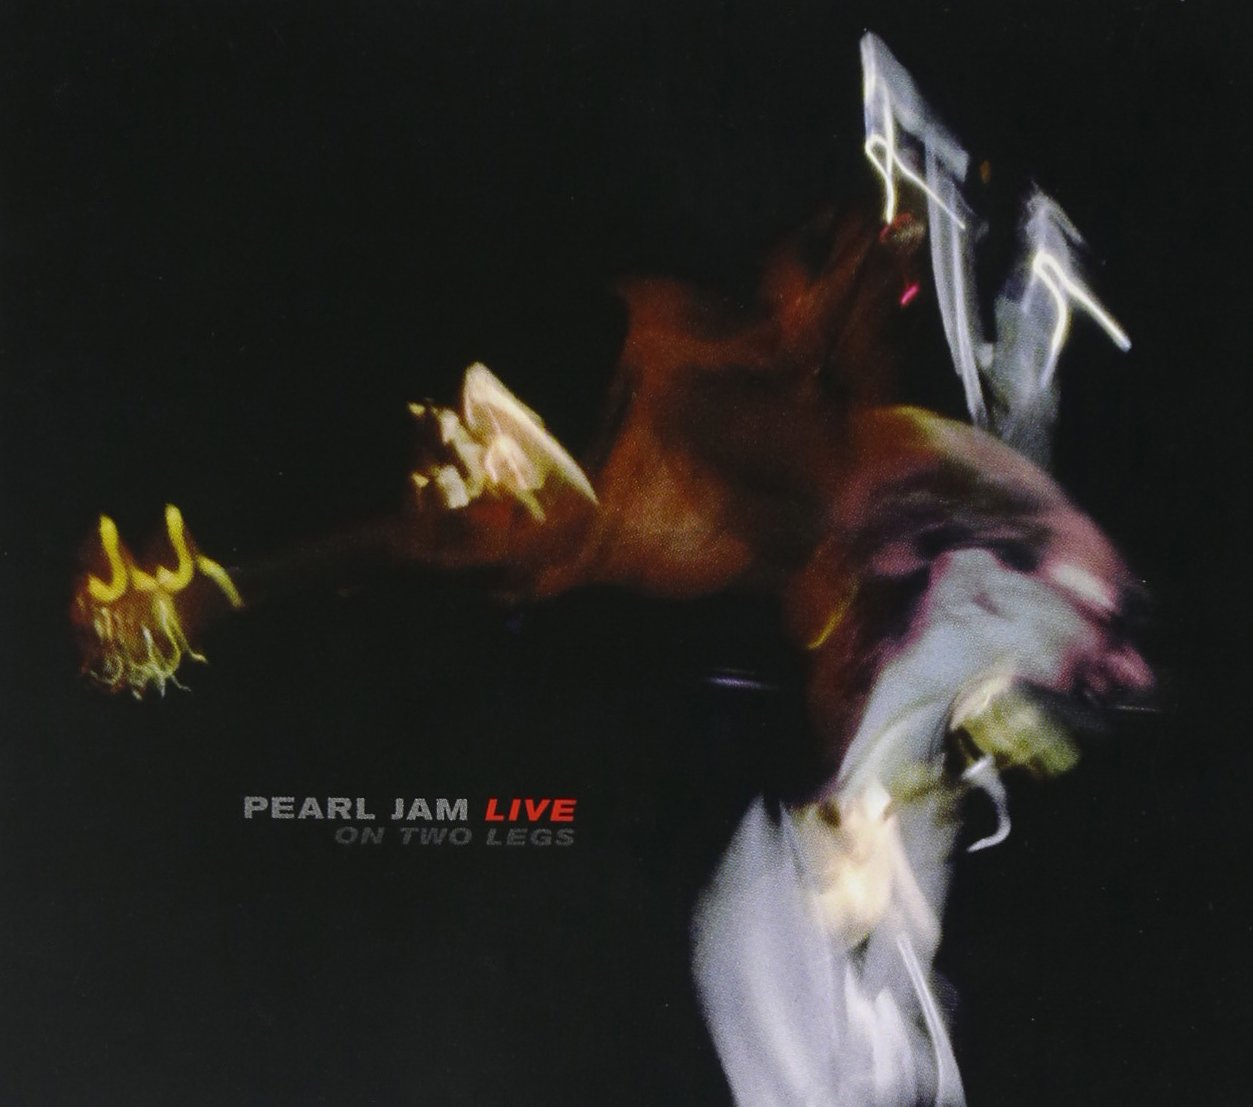 CD : Pearl Jam - Live on Two Legs (CD)